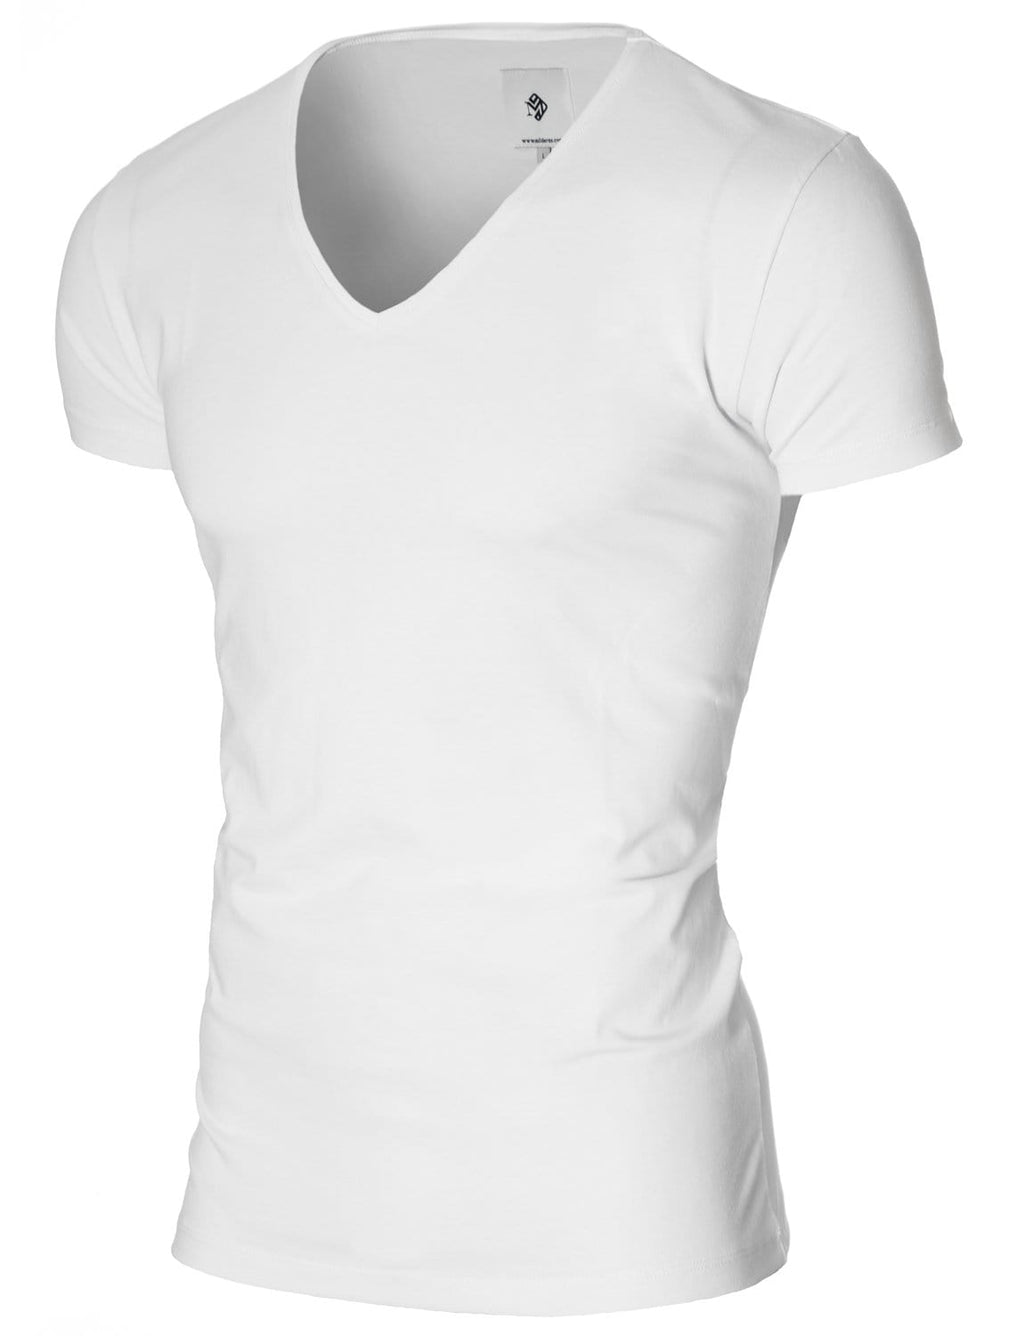 Mens basic V-neck t-shirt white (MOD2001VN)